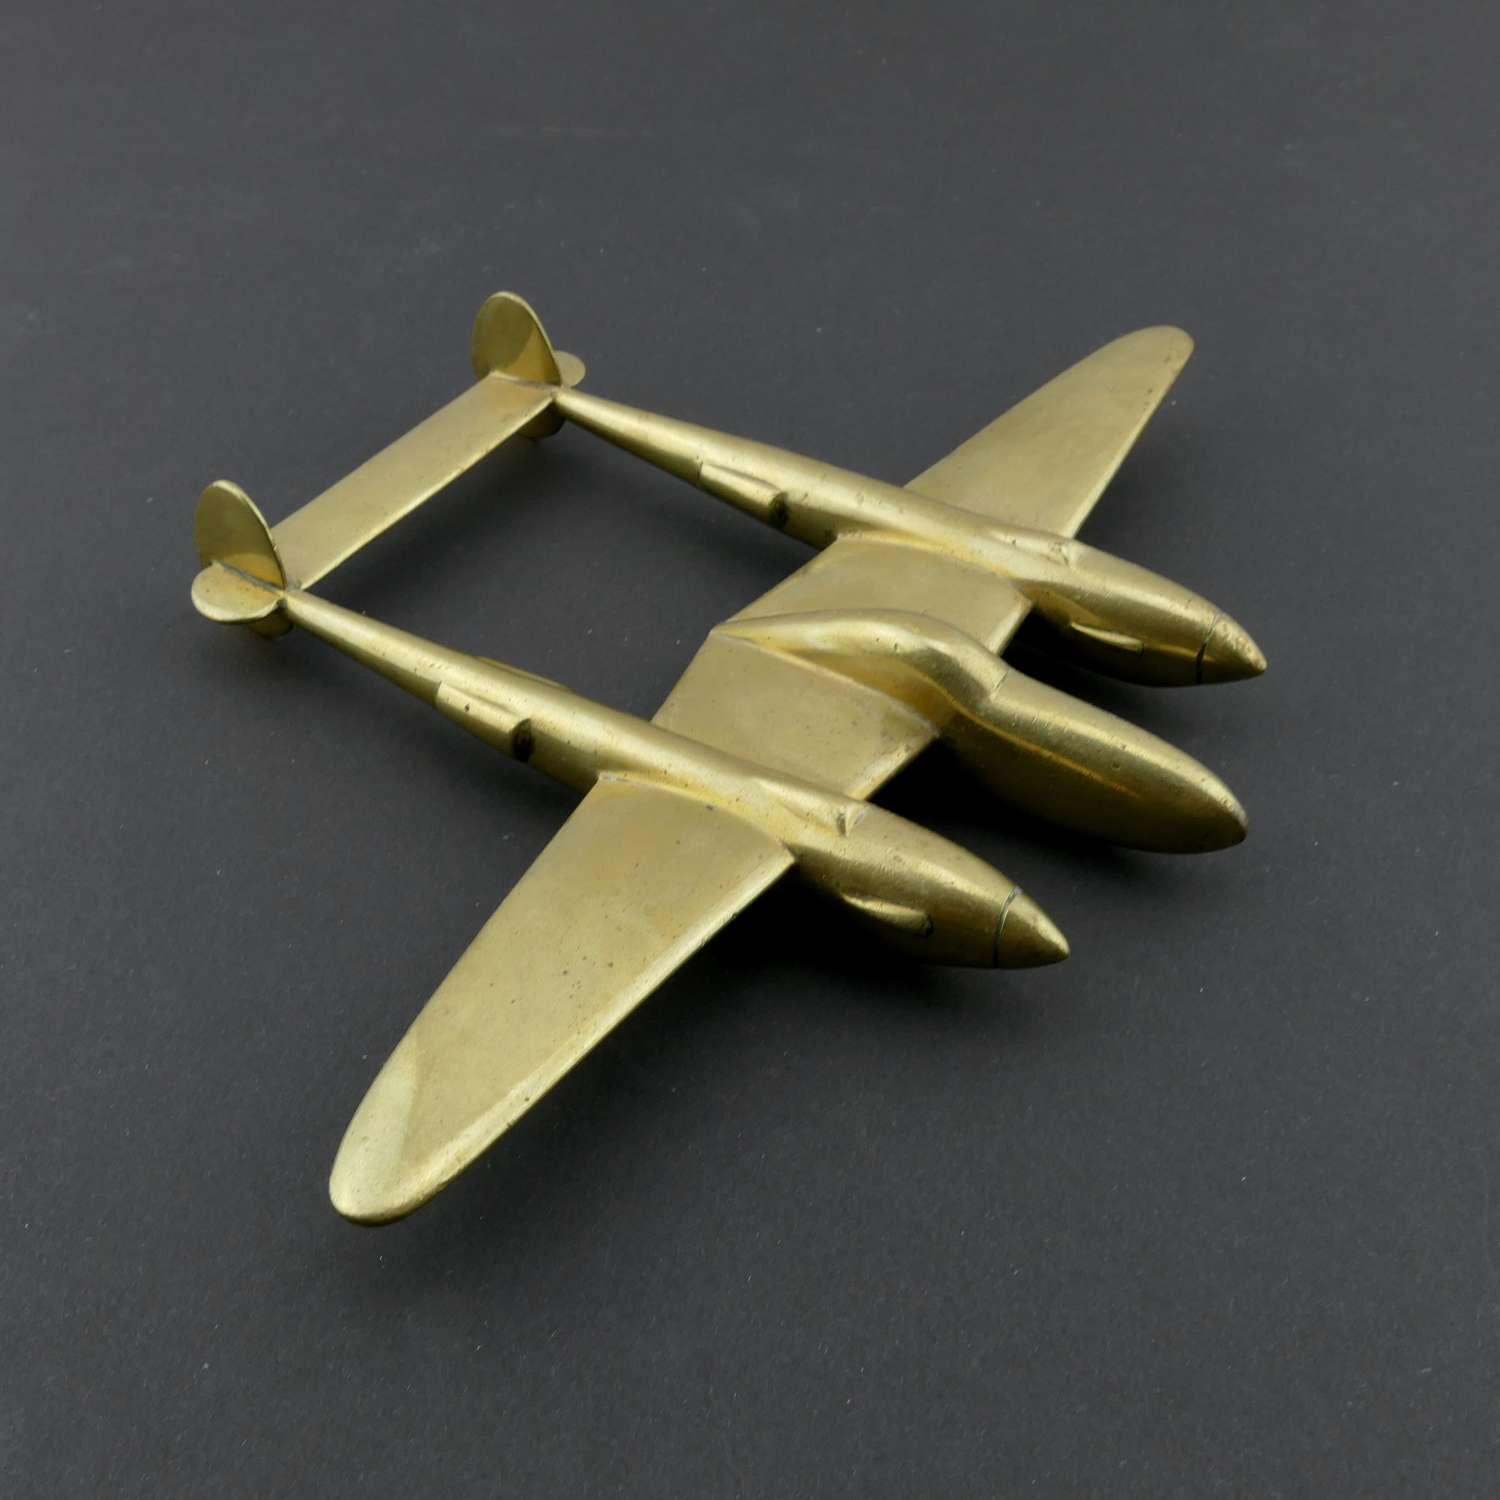 USAAF P-38 Lightning desk model